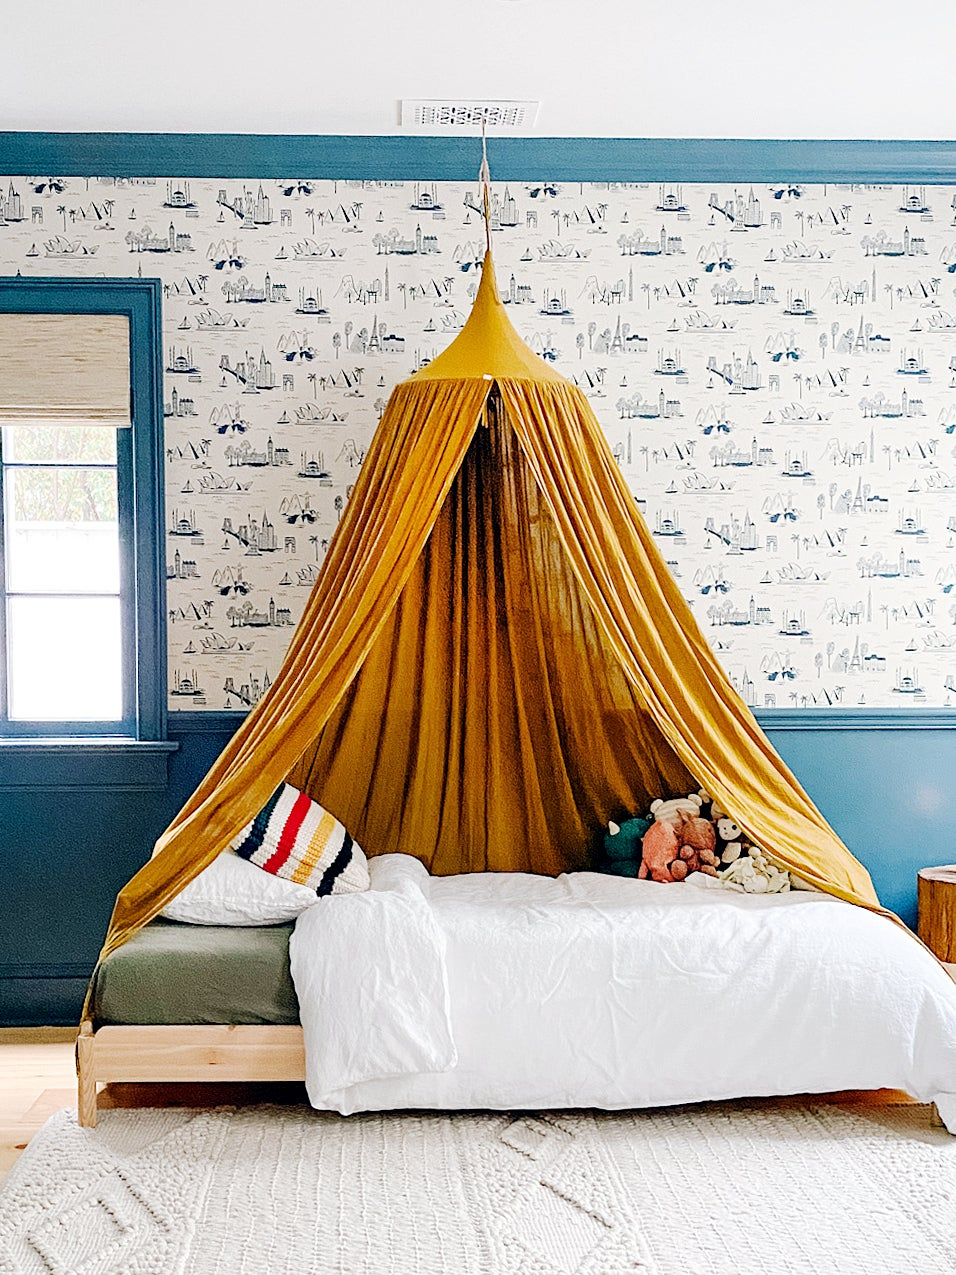 Kids room with yellow canopy